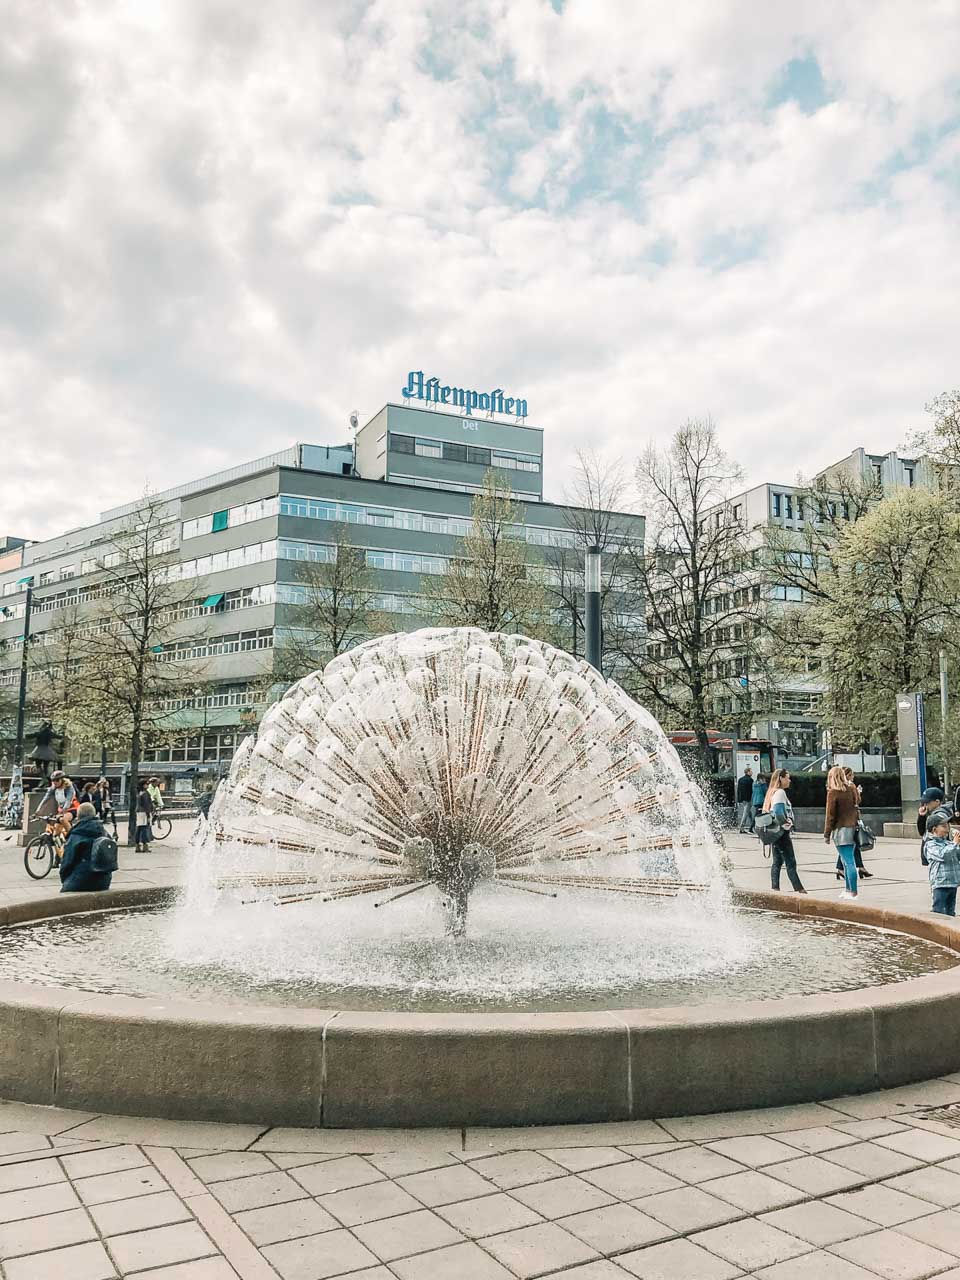 A fountain on Karl Johans gate in Oslo, Norway